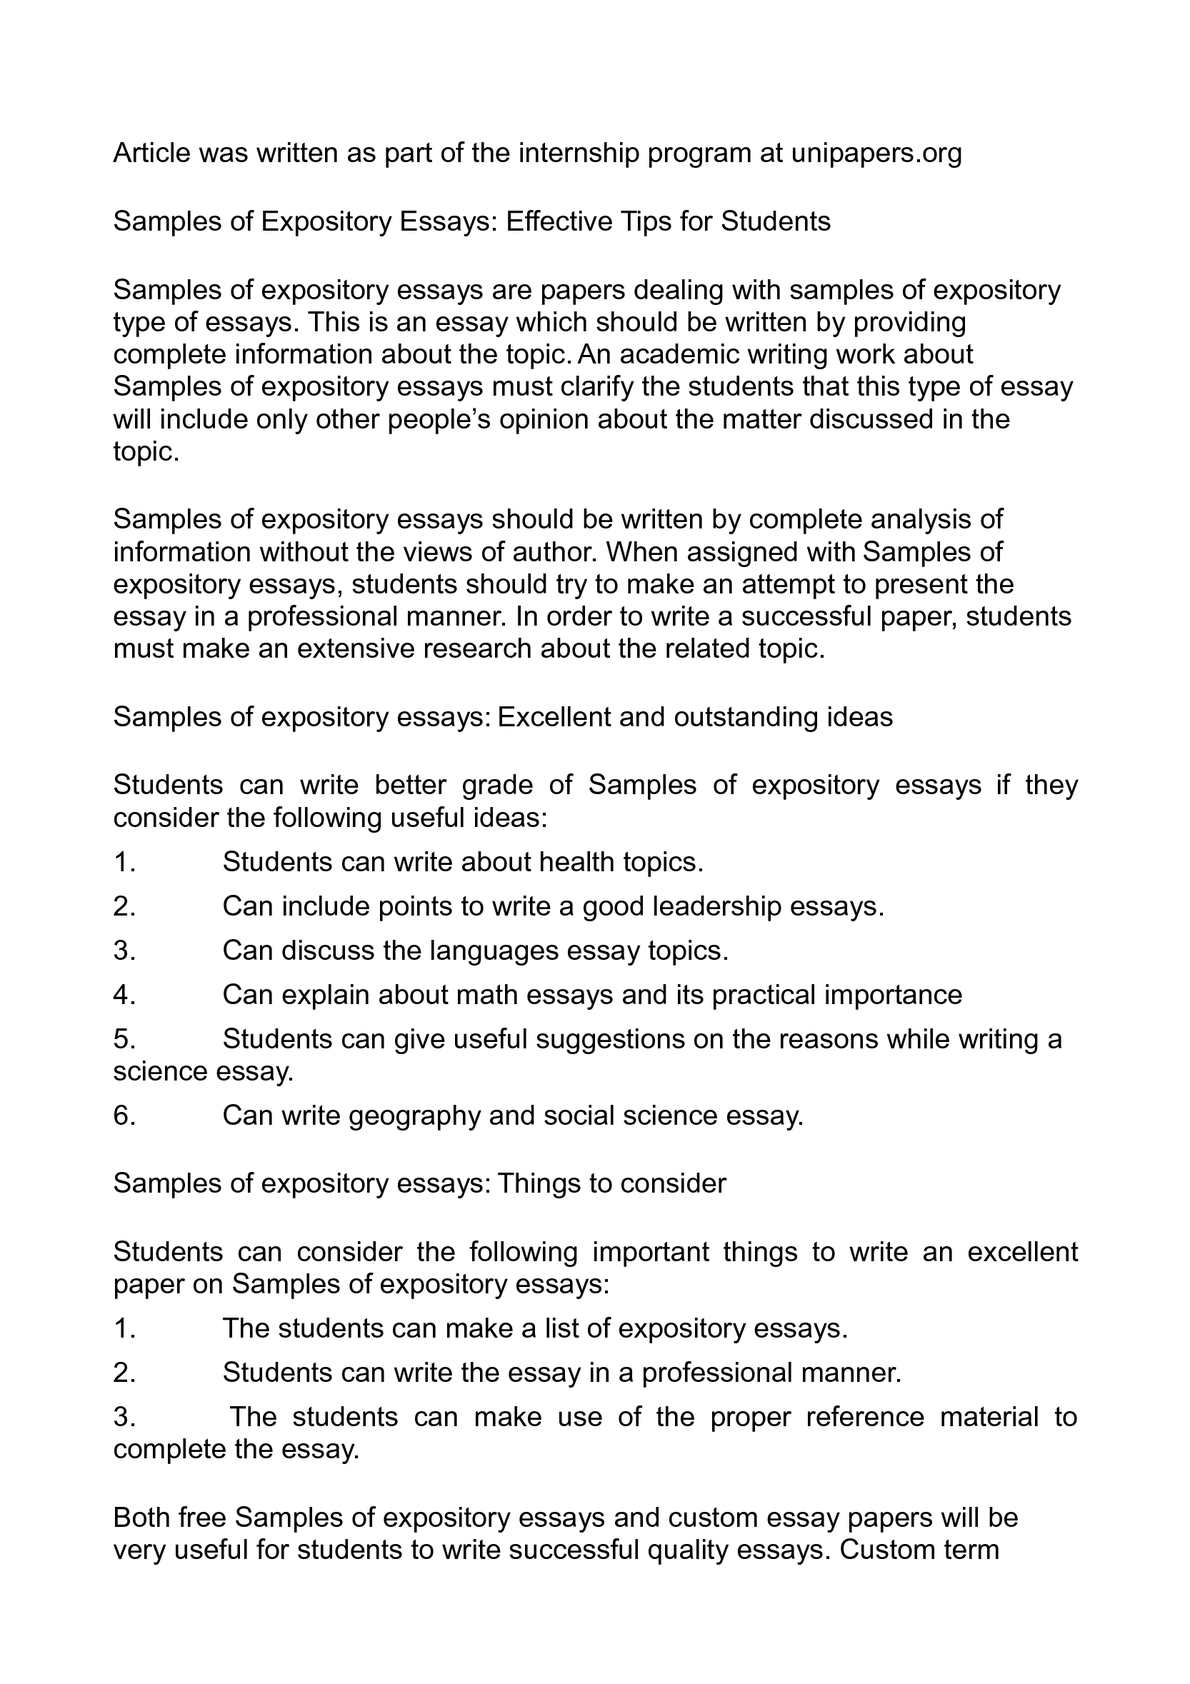 014 Essay Example P1 On Importance Of Social Rare Science Full